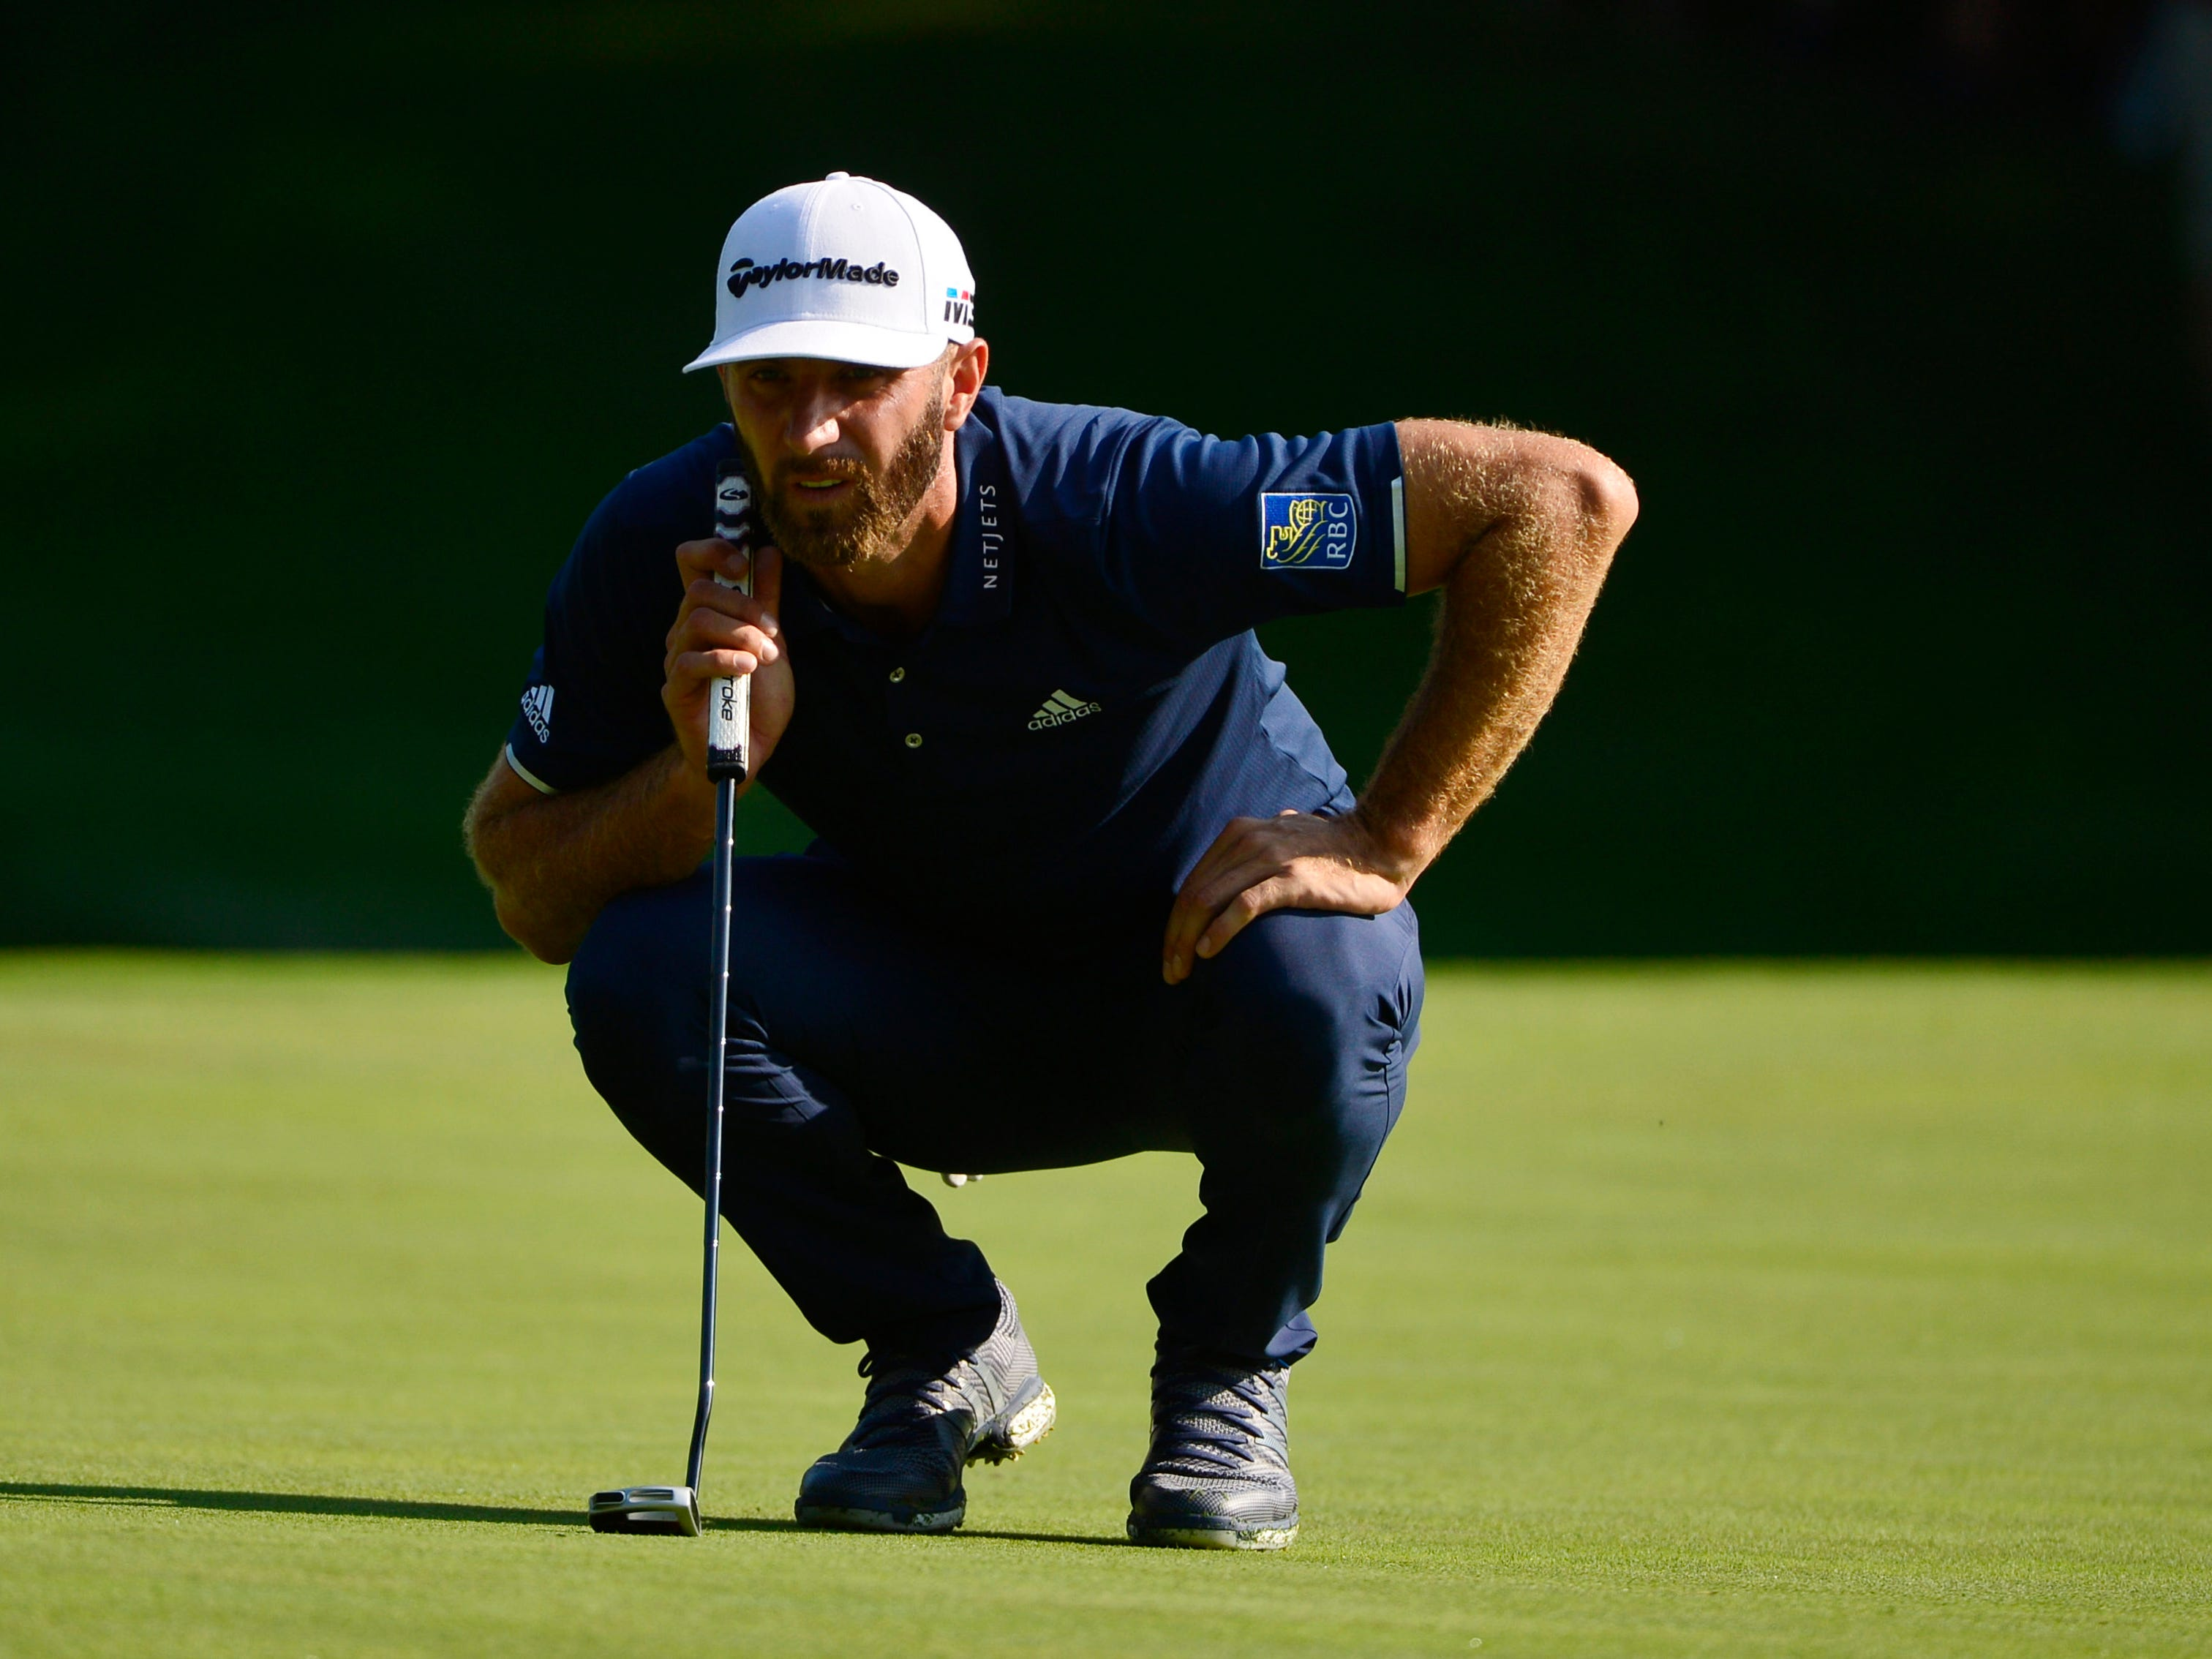 Dustin Johnson lines up a putt on the 15th green during the second round.